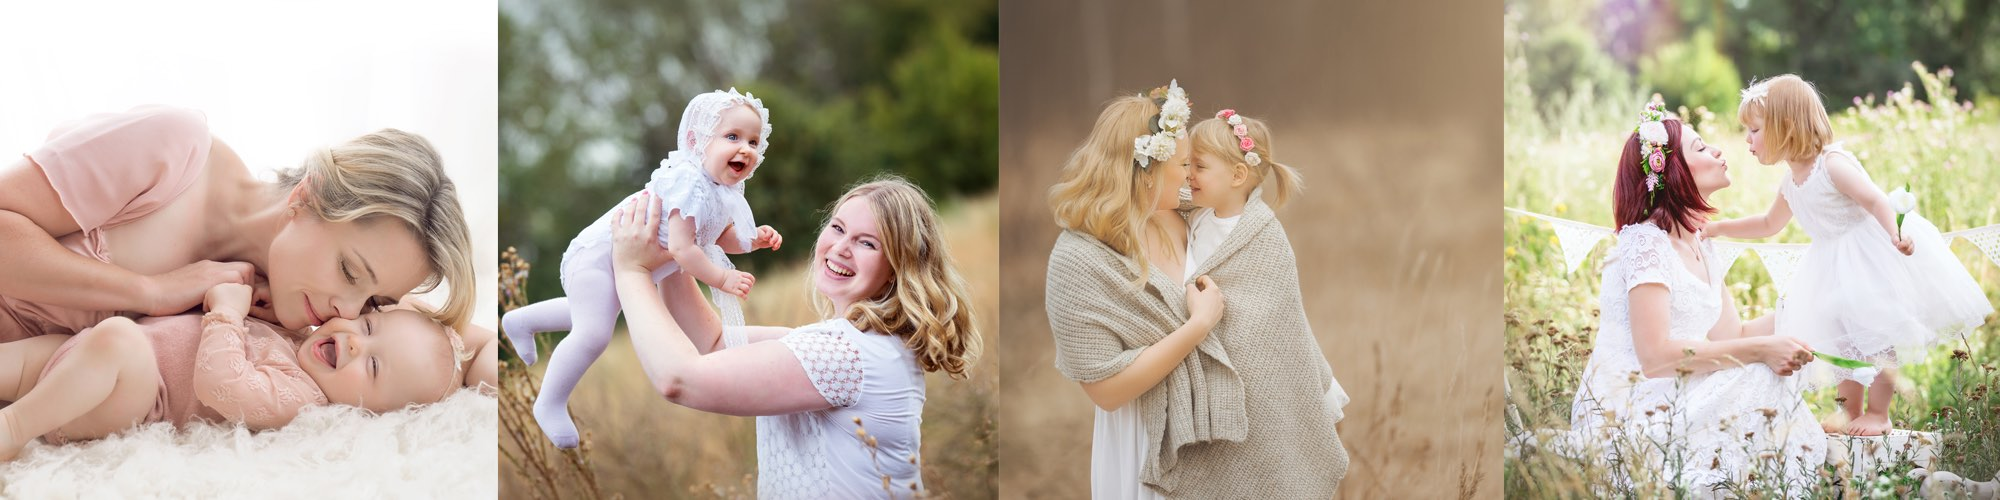 mutter-kind-shooting-in-der-natur-kinderfotograf-kinderfotografie-babyfotos